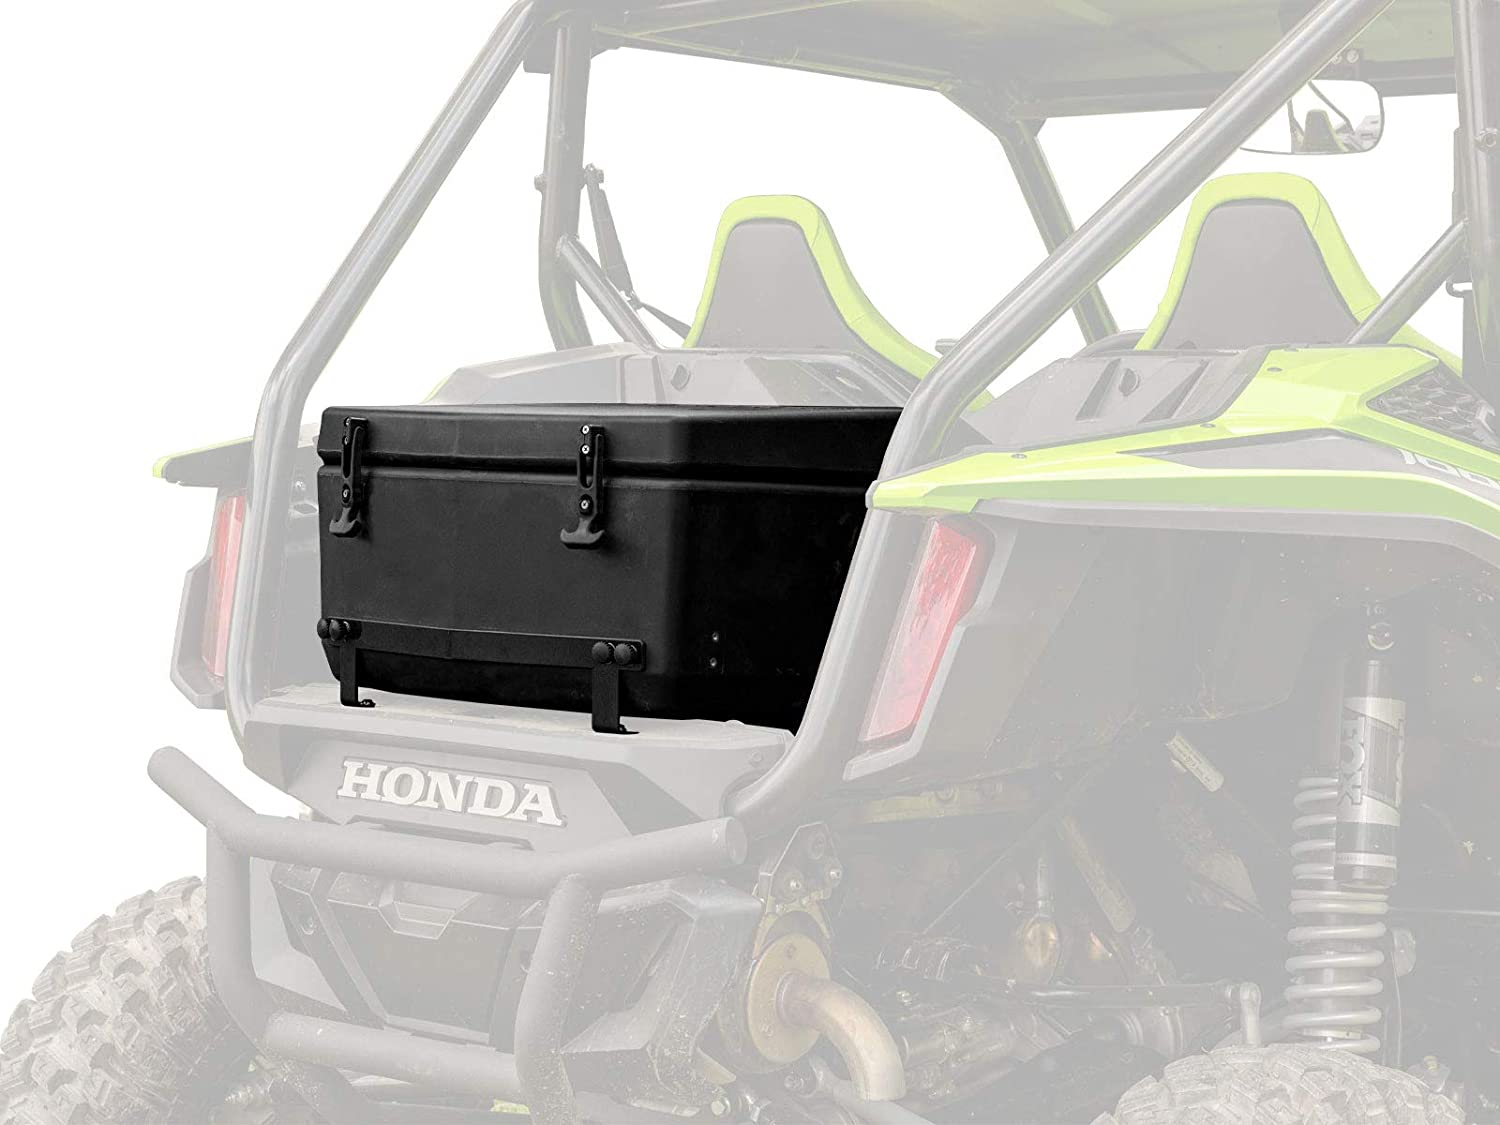 SuperATV Heavy Duty Cooler/Storage Cargo Box for Honda Talon 1000 X / 1000 R - (2019+) - Insulated to Keep Drinks Cold! - 30-liter Capacity